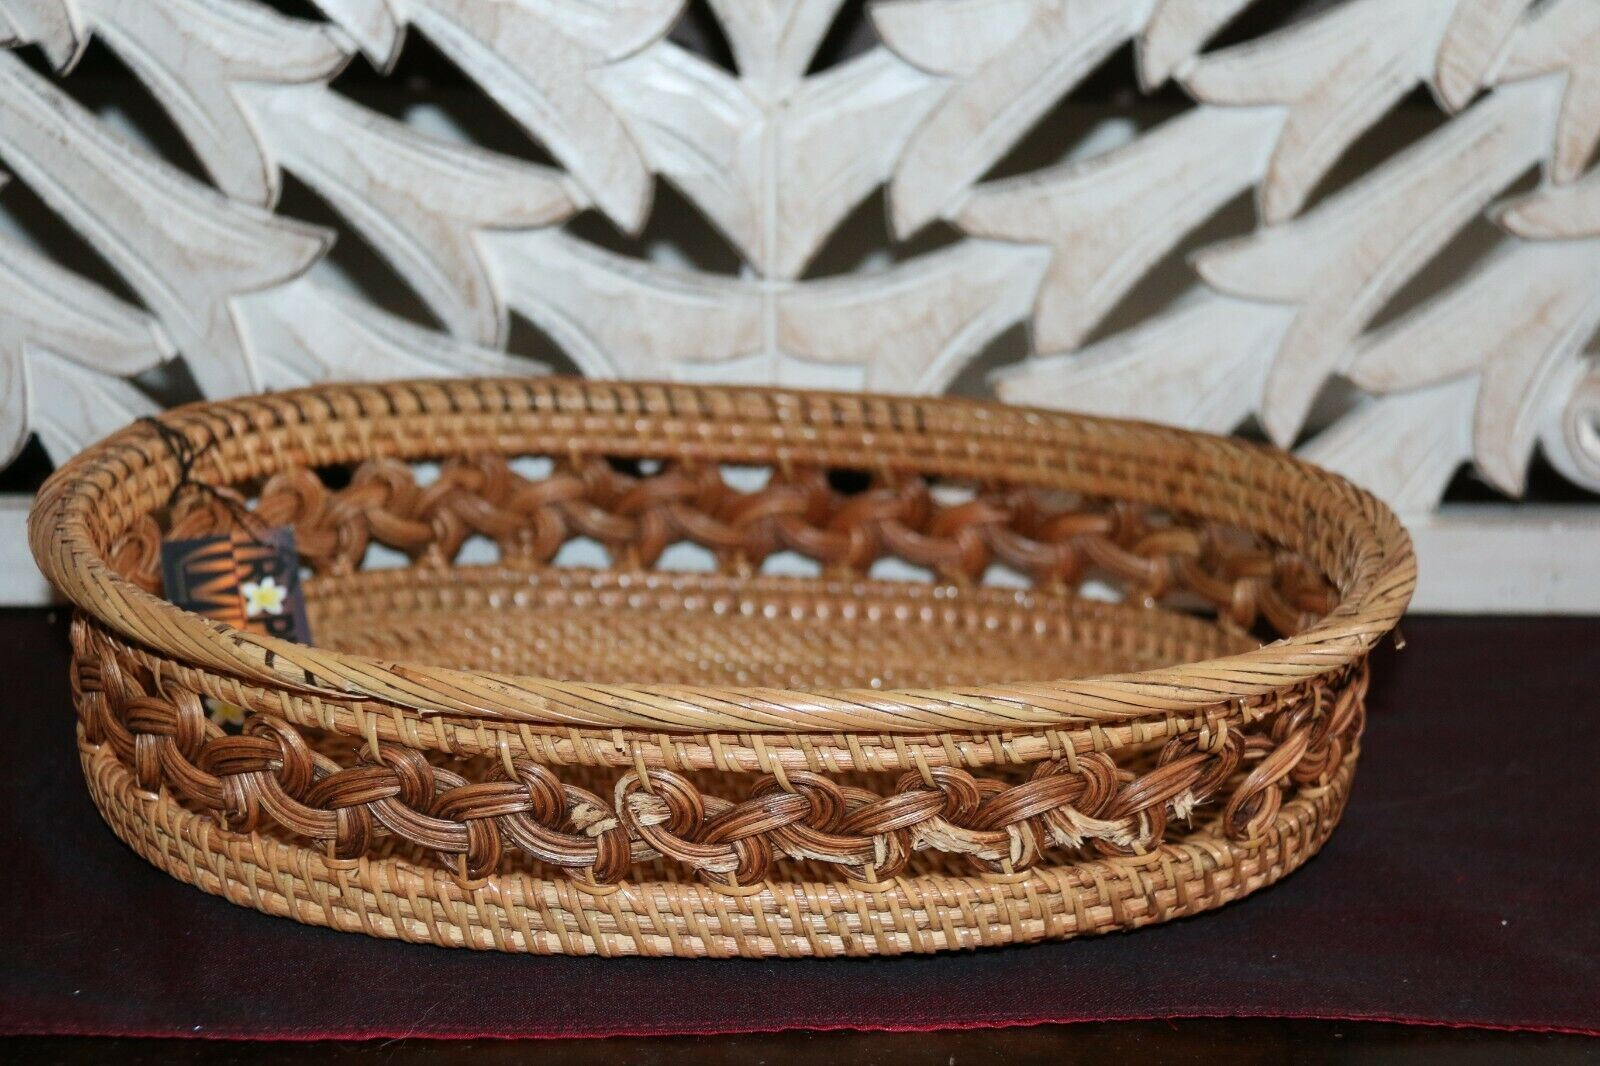 NEW Balinese Hand Woven Natural Rattan Open Baskets - 3 sizes available.